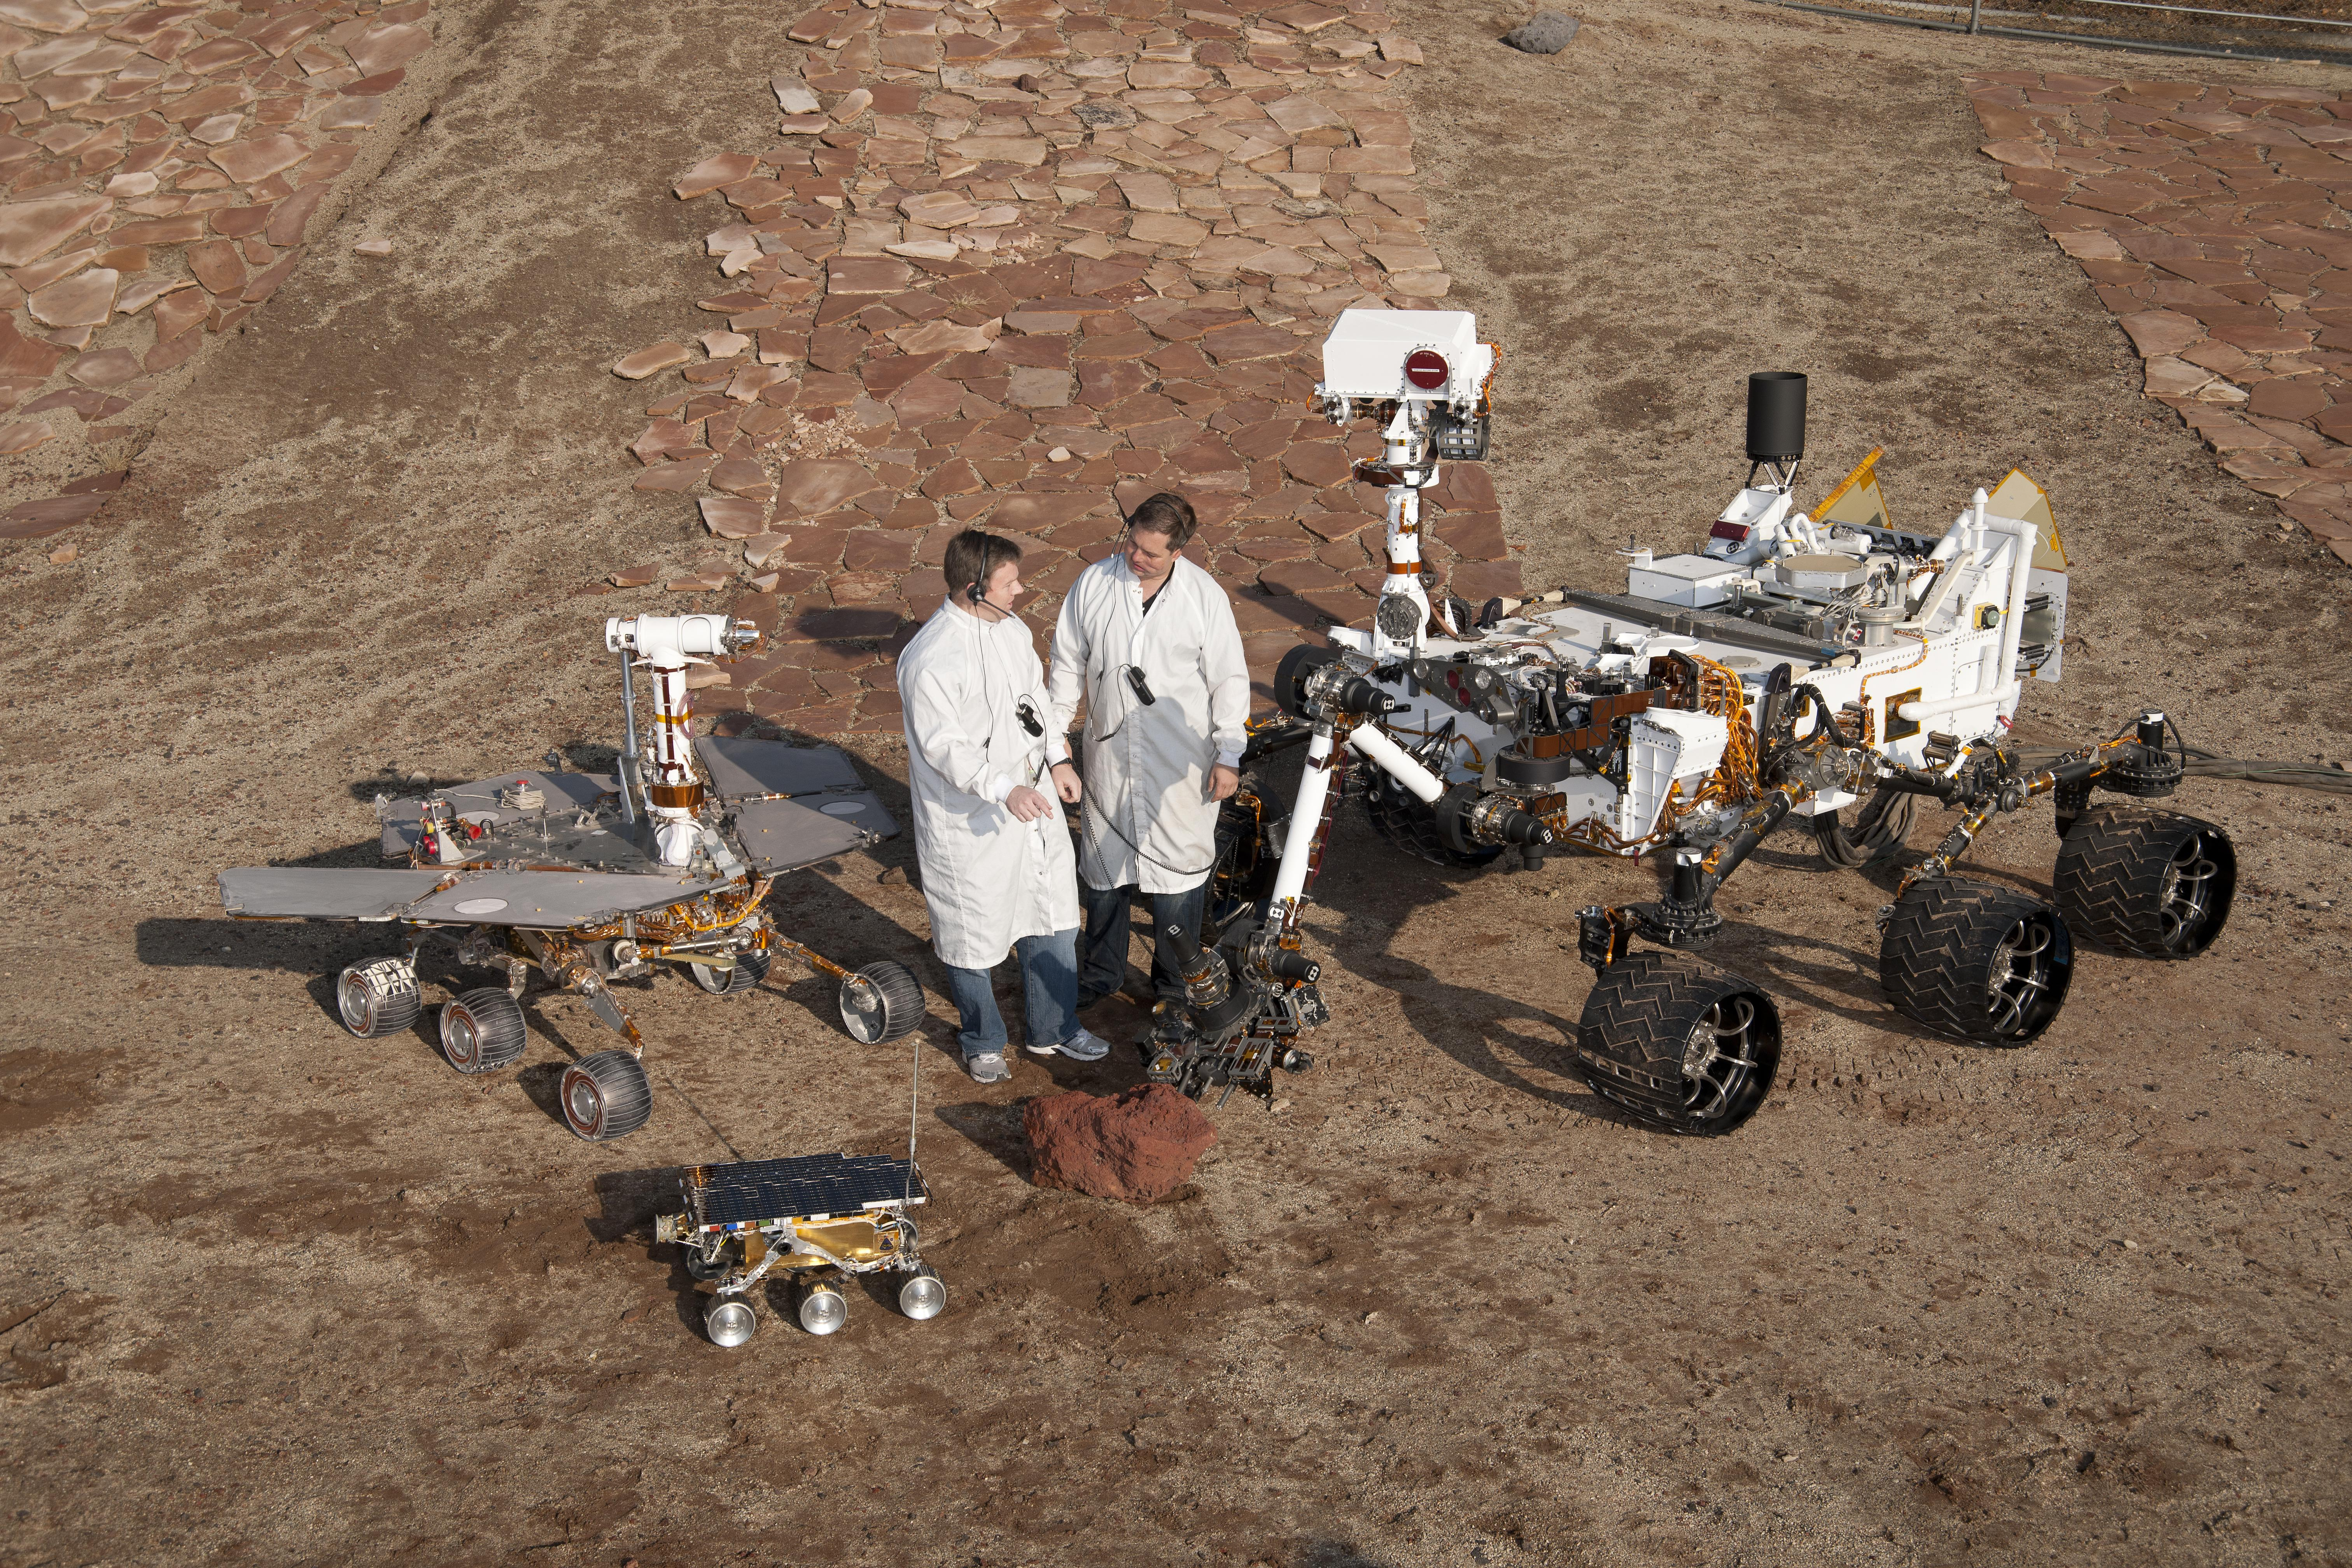 NASA's Mars Pathfinder - Pics about space